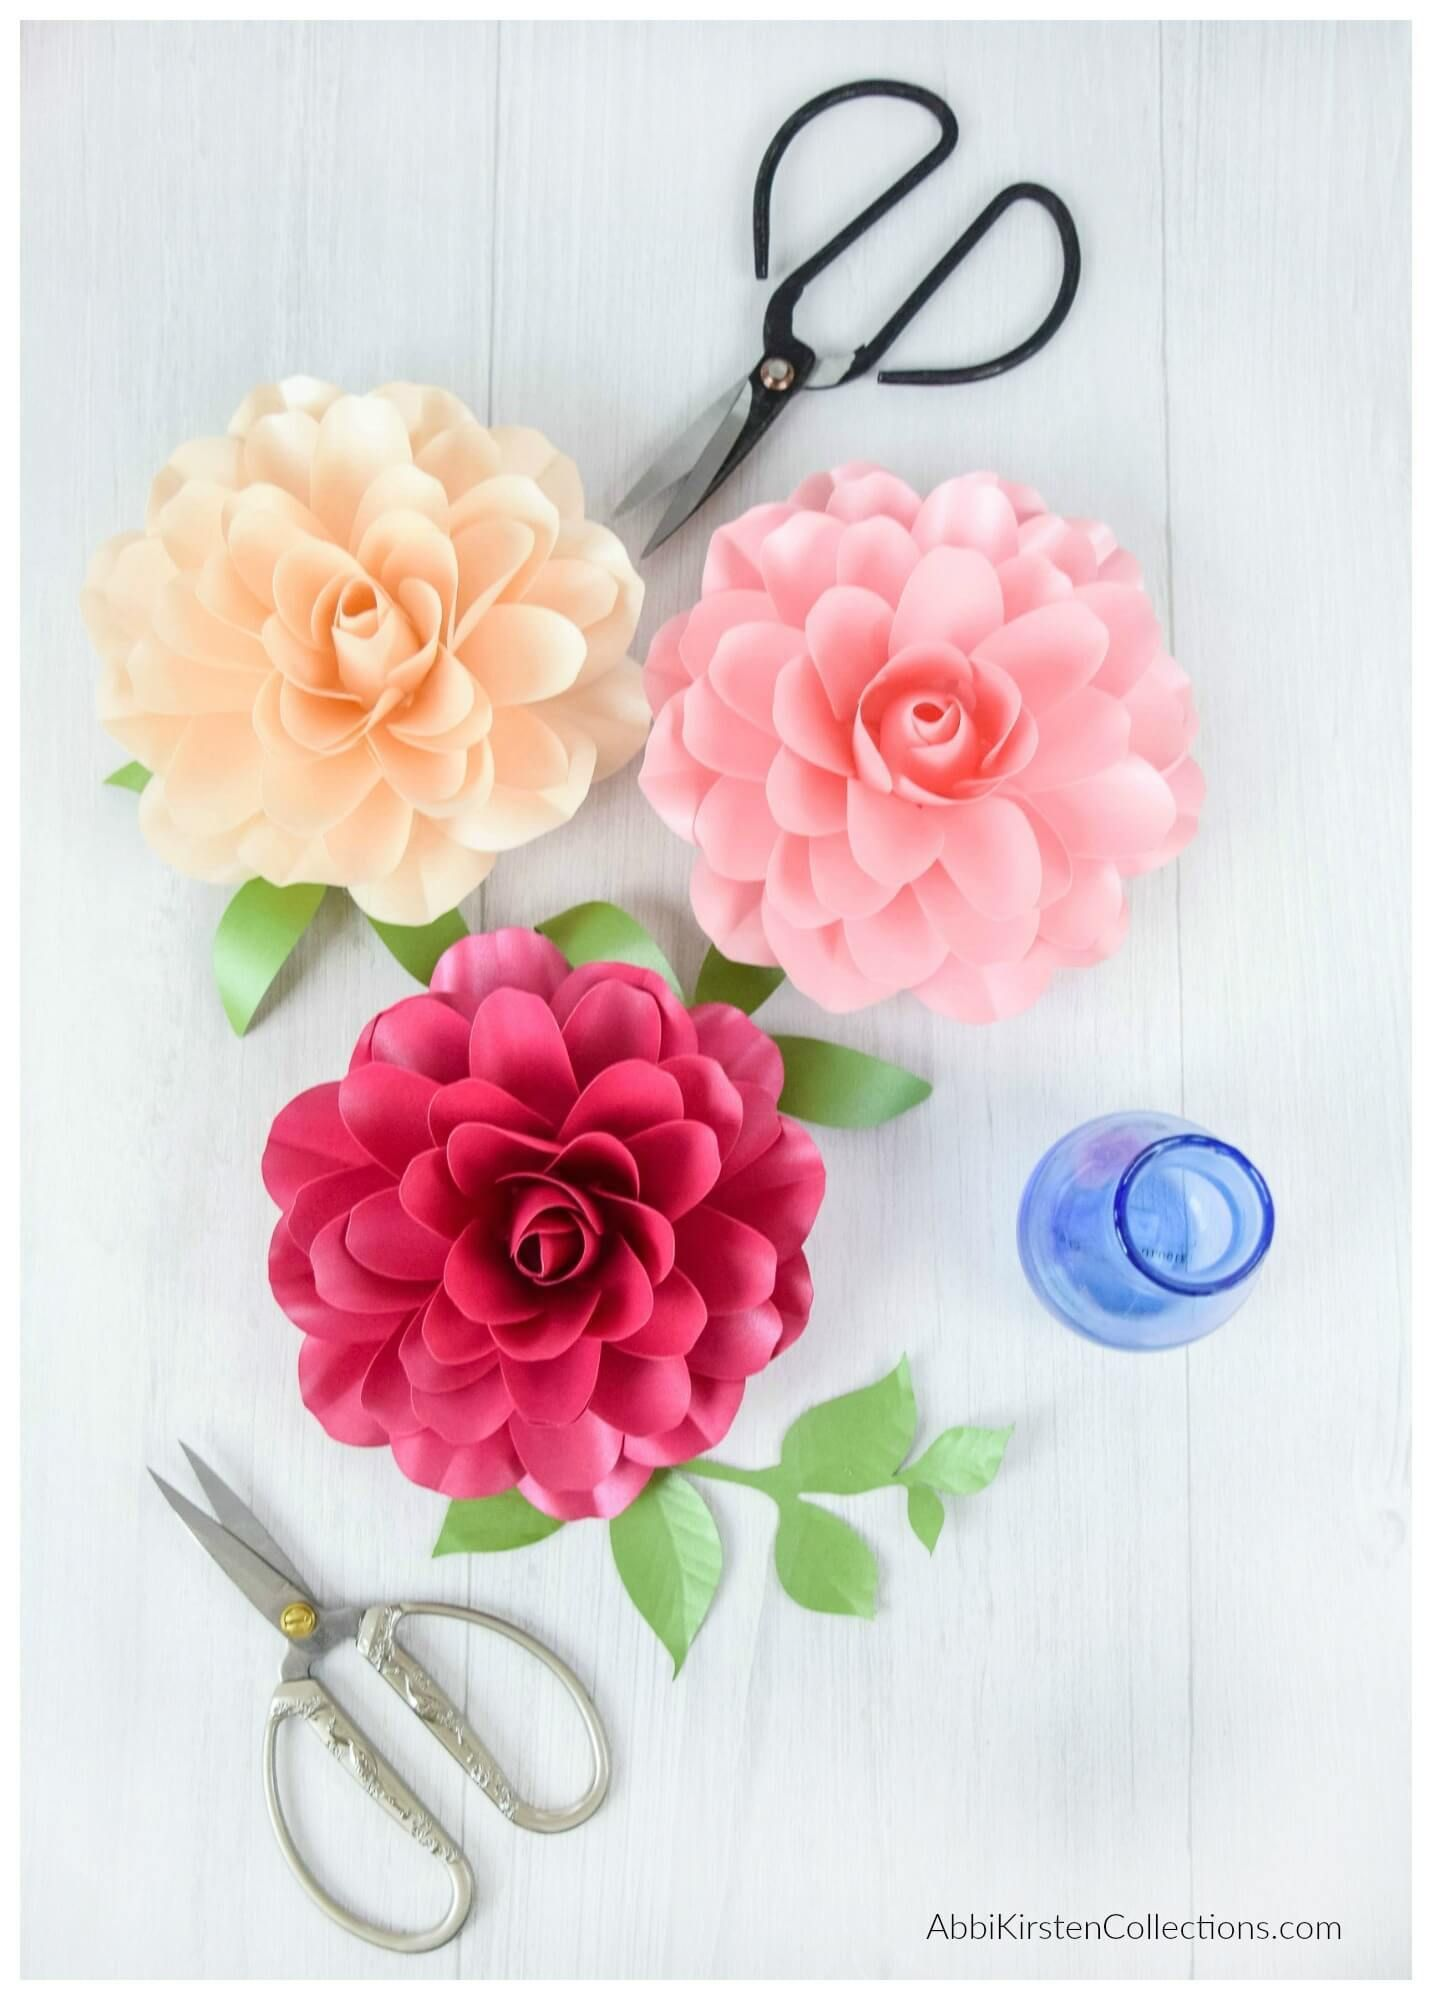 How To Make Small Paper Roses Camellia Rose Template Tutorial Paper Flowers Craft Paper Flower Tutorial Paper Flowers Diy